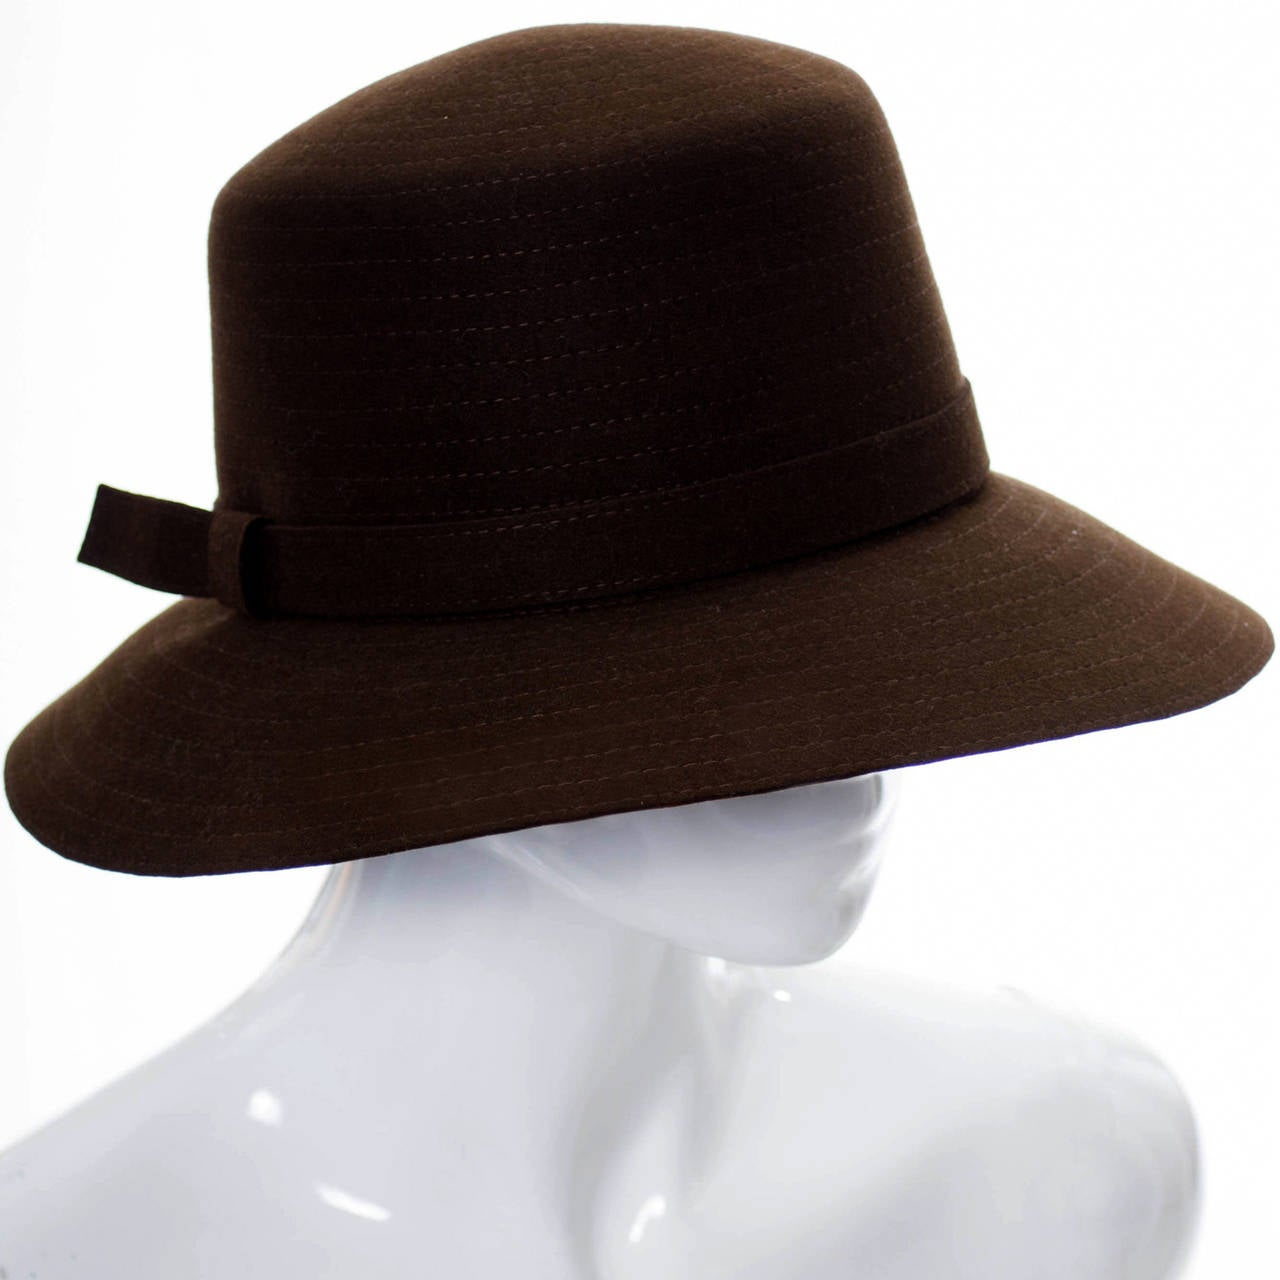 Givenchy Nouvelle Boutique Vintage 1970s Brown Fur Felt Hat As New  In Excellent Condition For Sale In Portland, OR